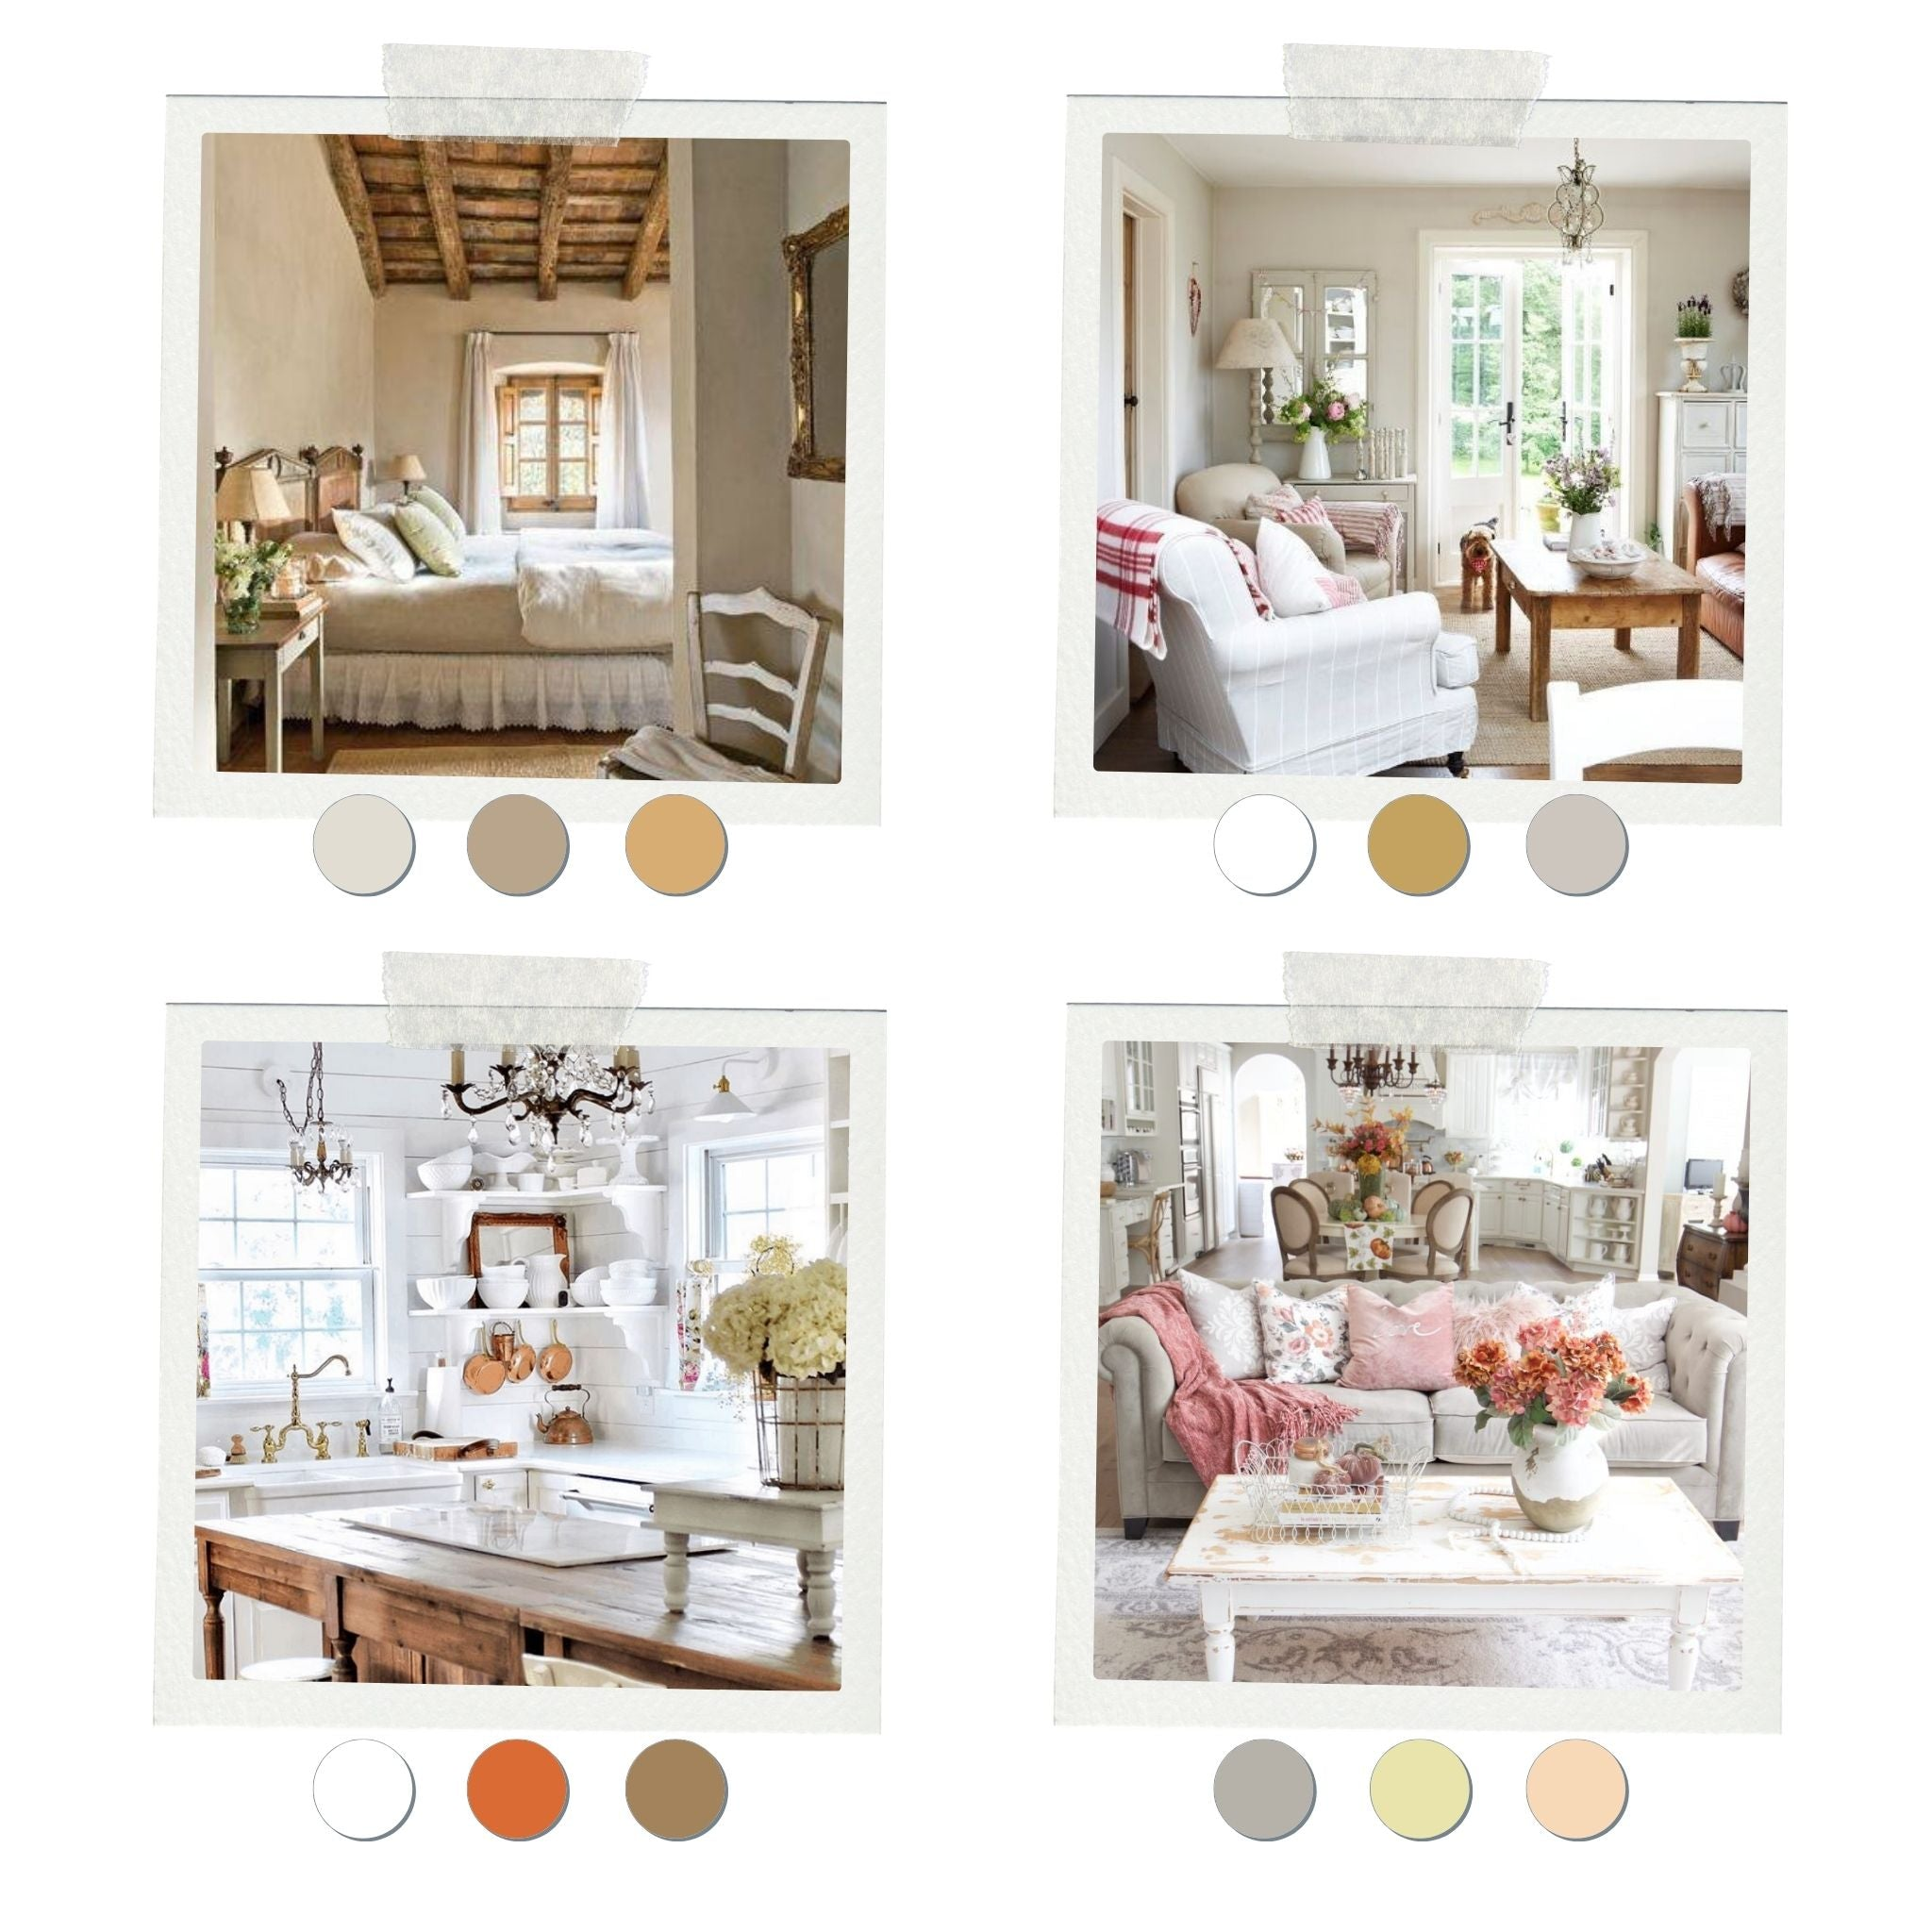 French country home color palette, the foudnation of a French country home decor. French Address tips on French country home.